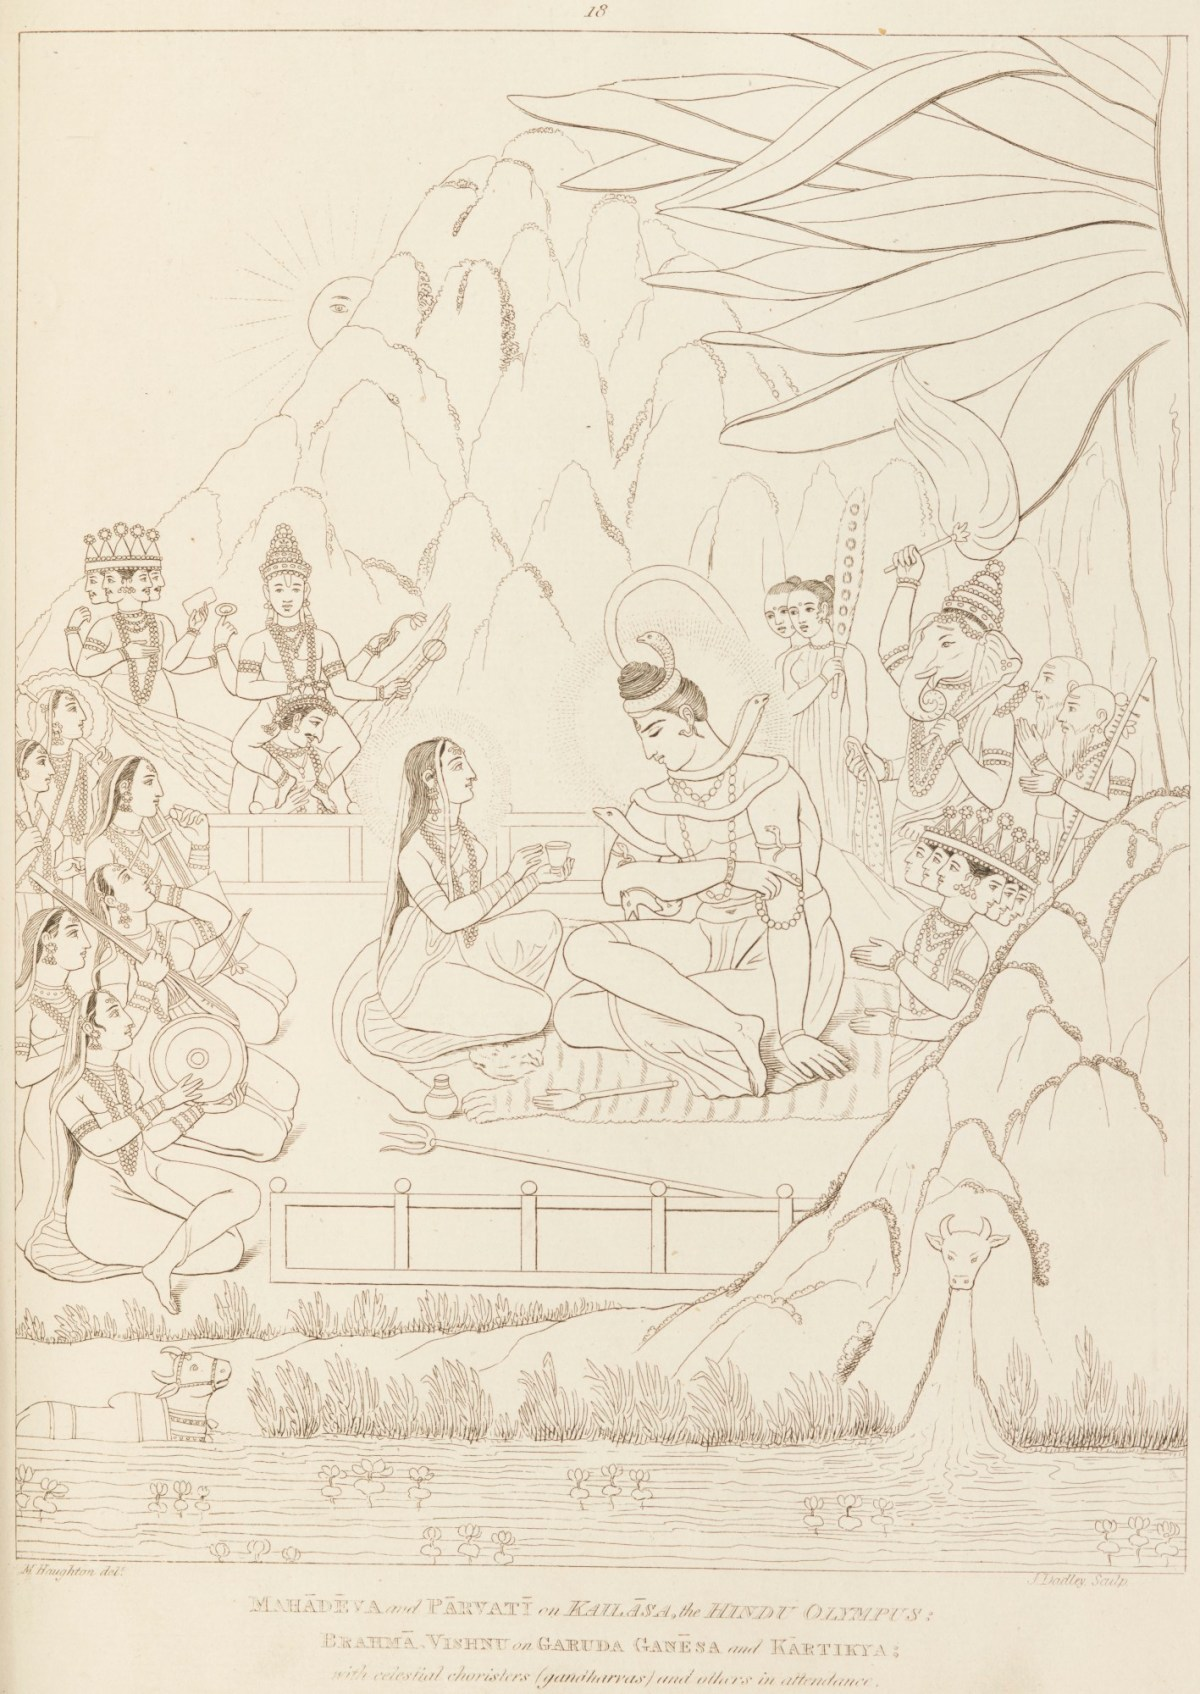 Shiva And Parvati On Mount Kailash Works Of Art Ra Collection Royal Academy Of Arts